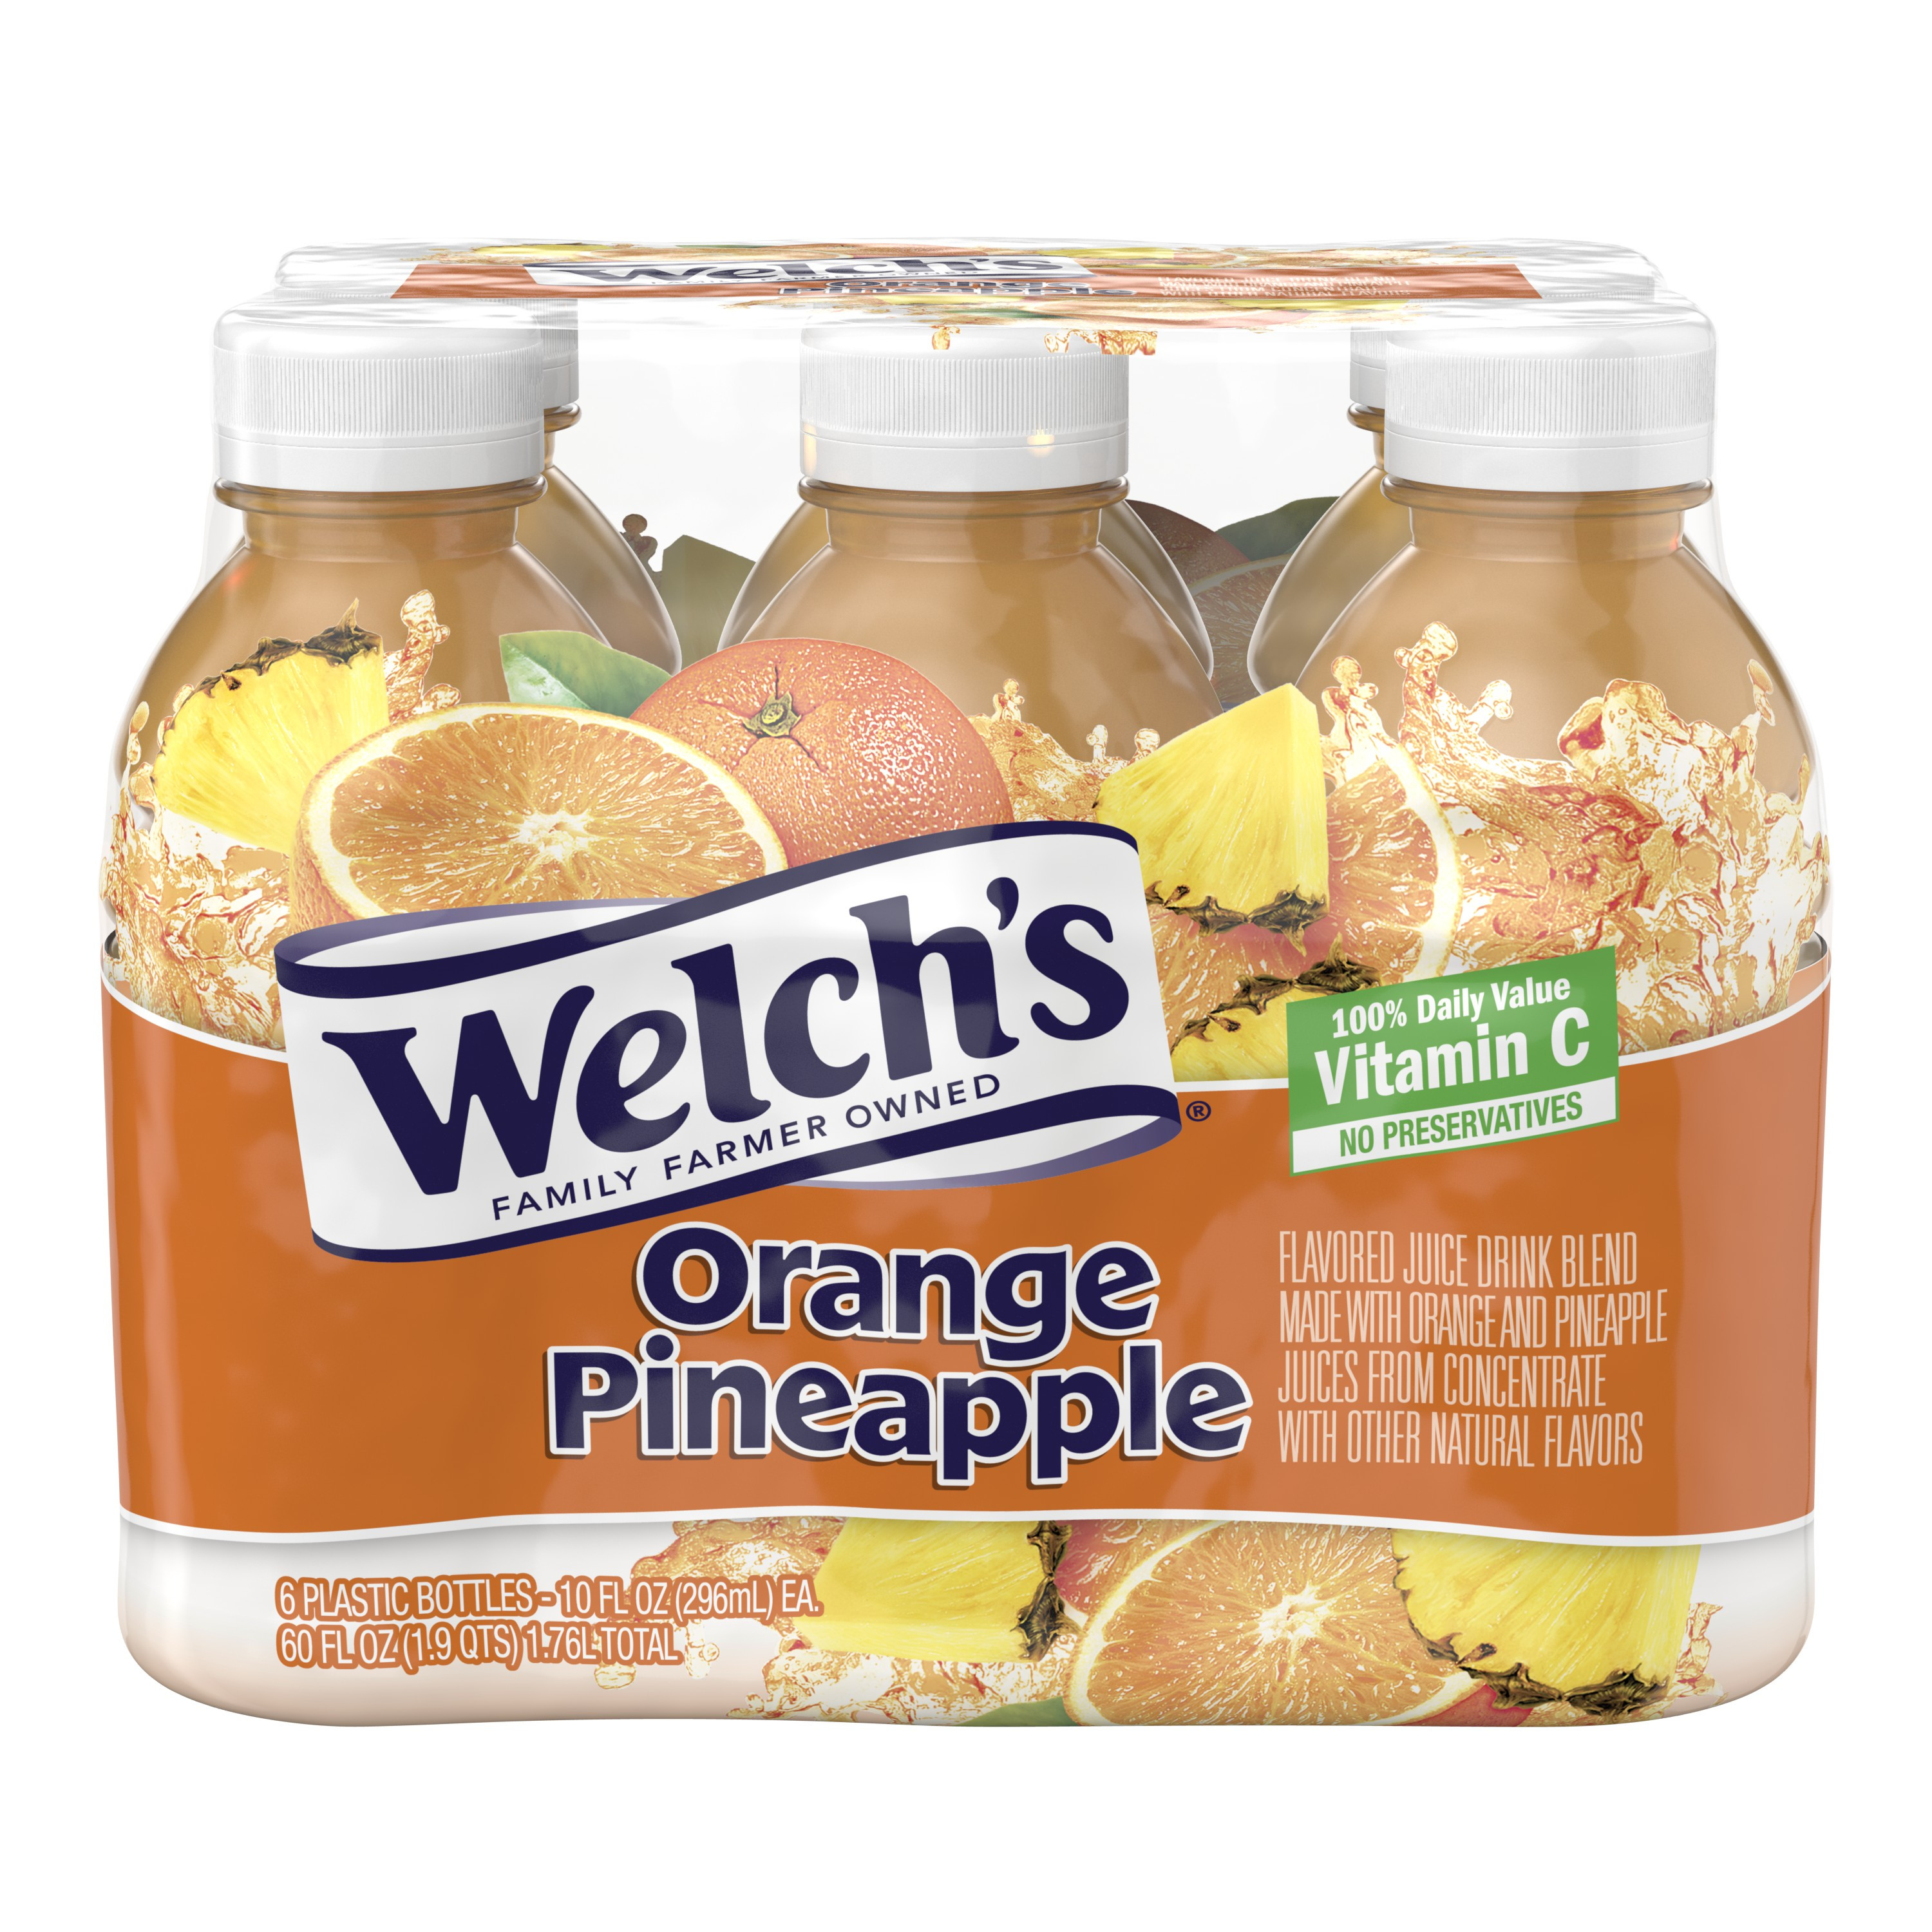 Welch's Juice, Orange Pineapple, 10 Fl Oz, 6 Count